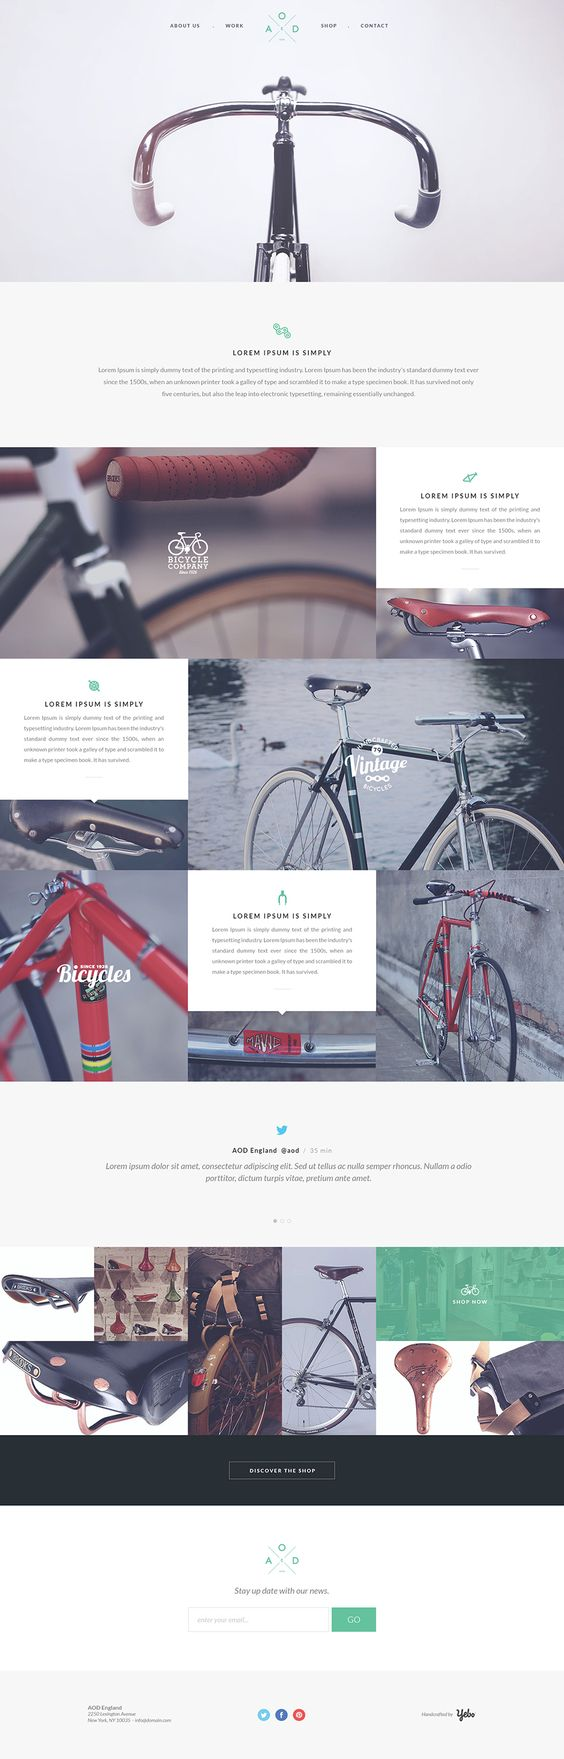 Resource from:  Inspiration DE